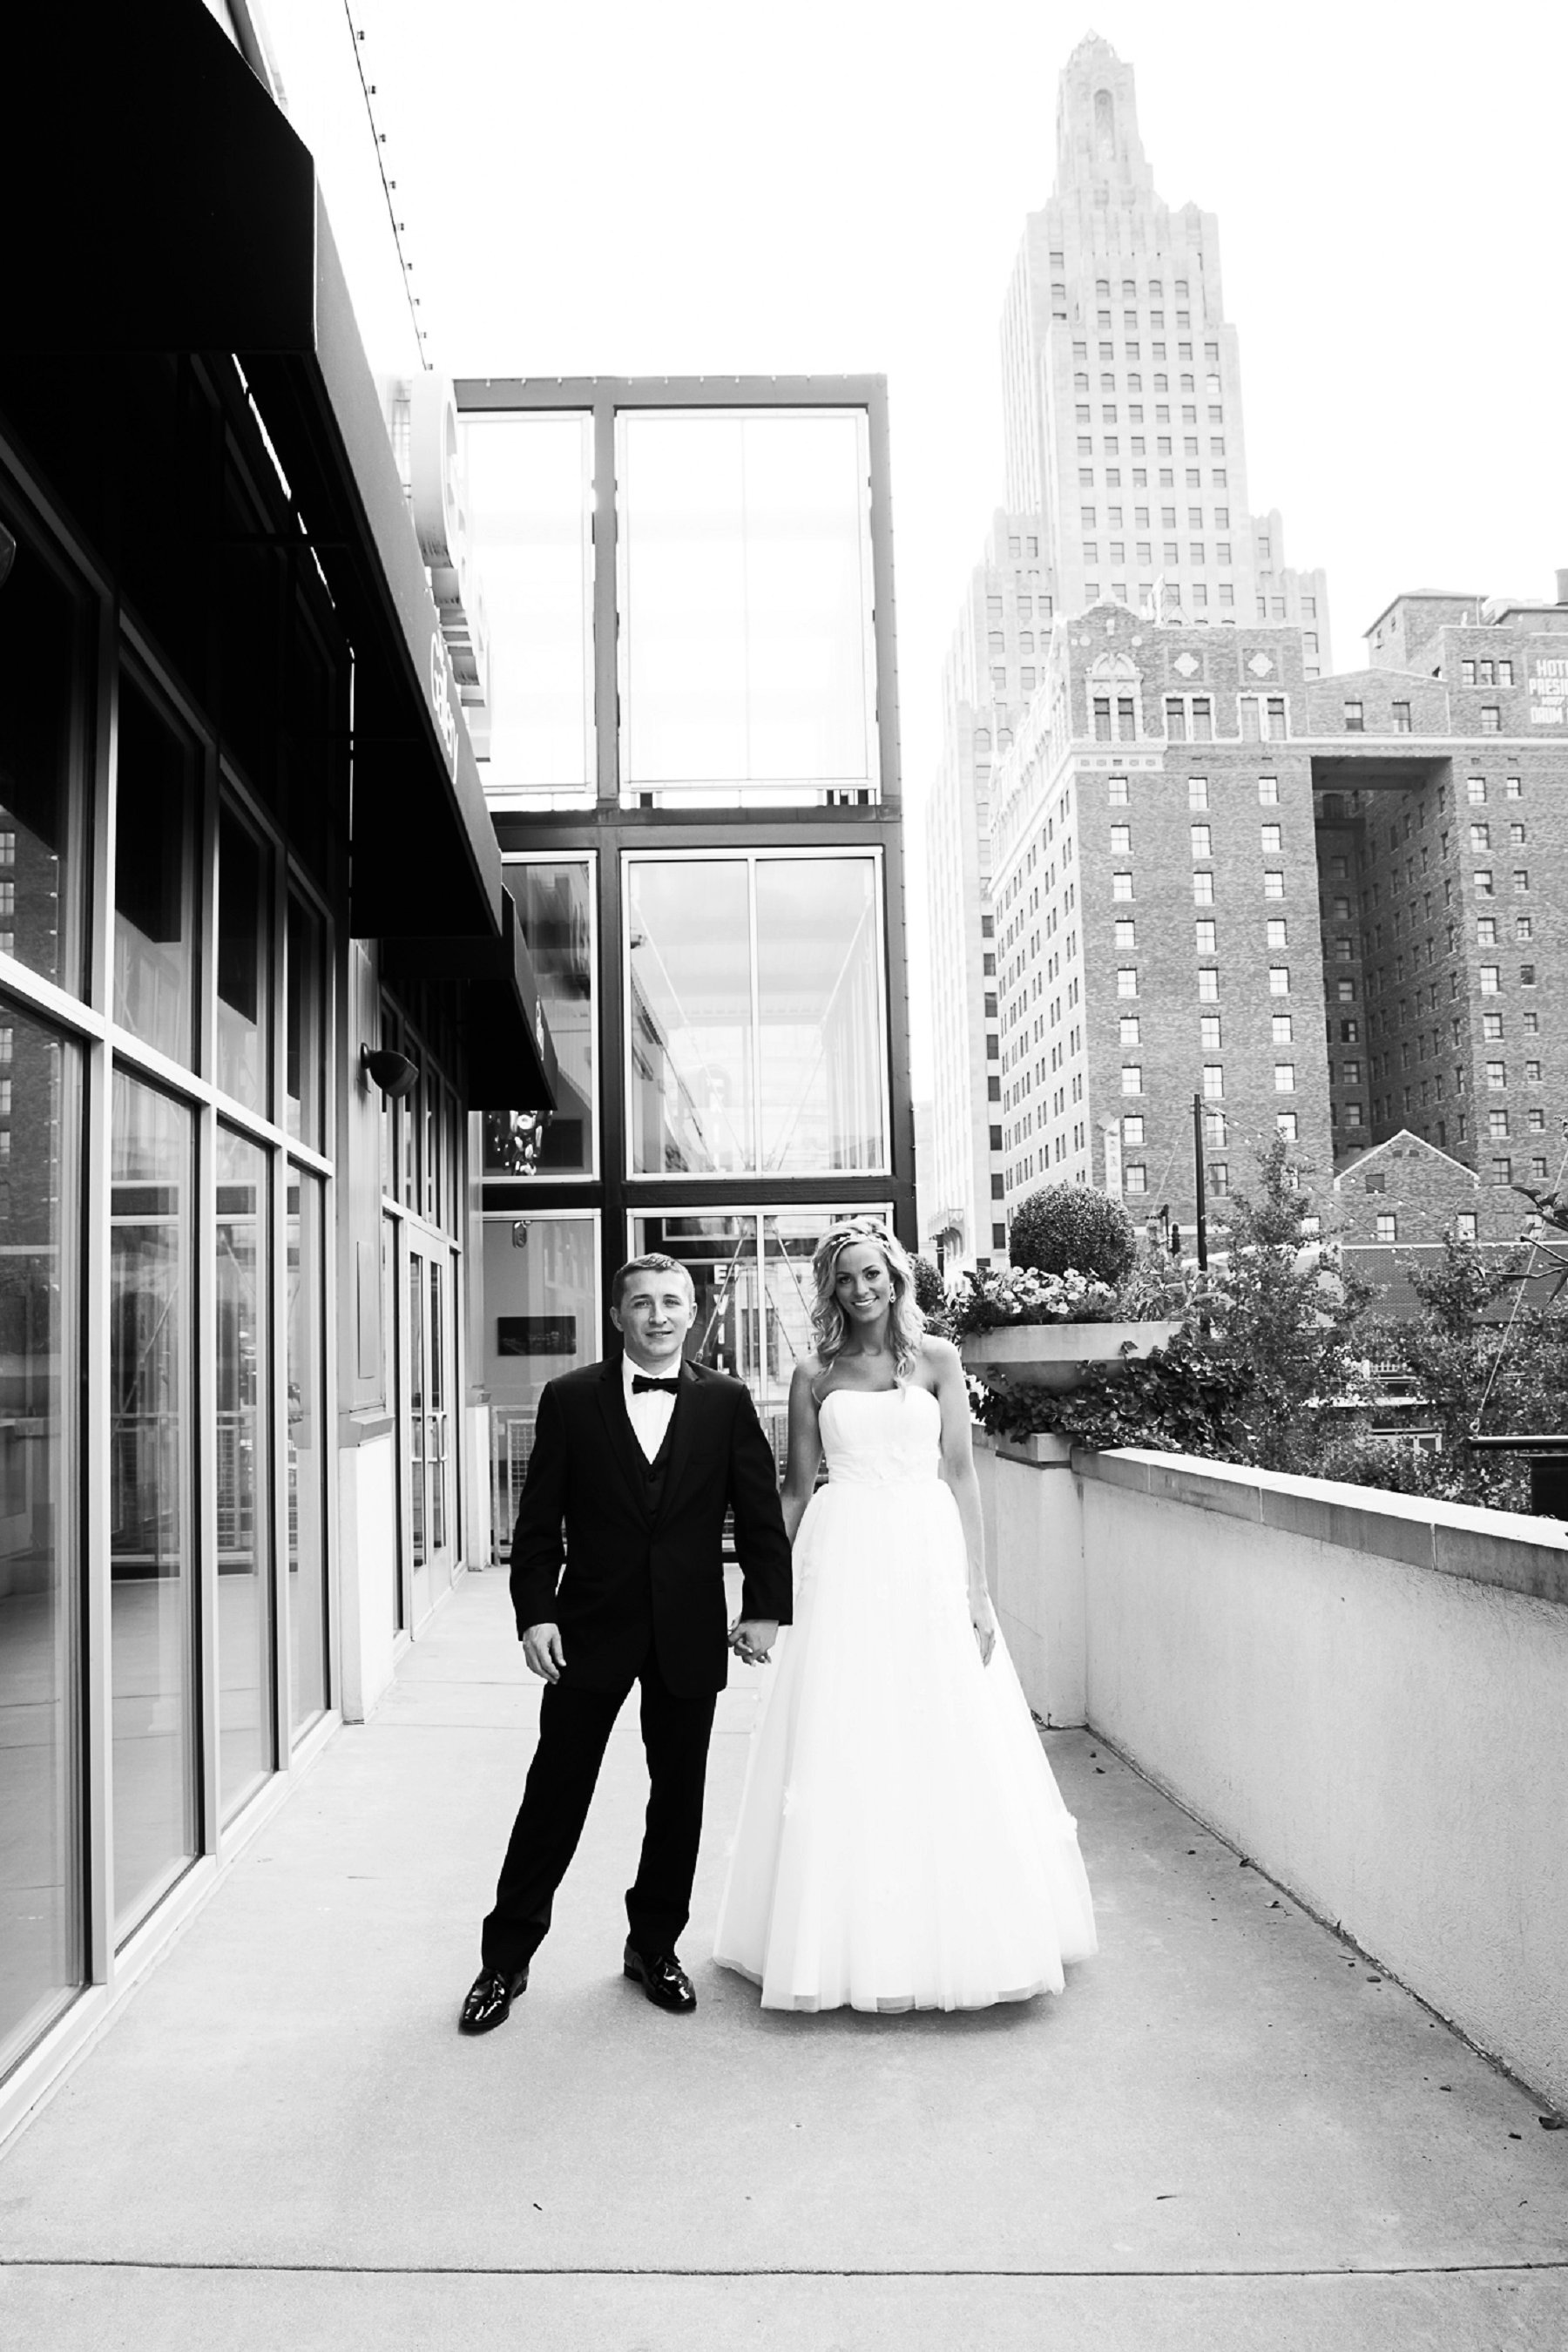 Black and White Wedding Photography in Kansas City by Wedding Photographer, Merry Ohler